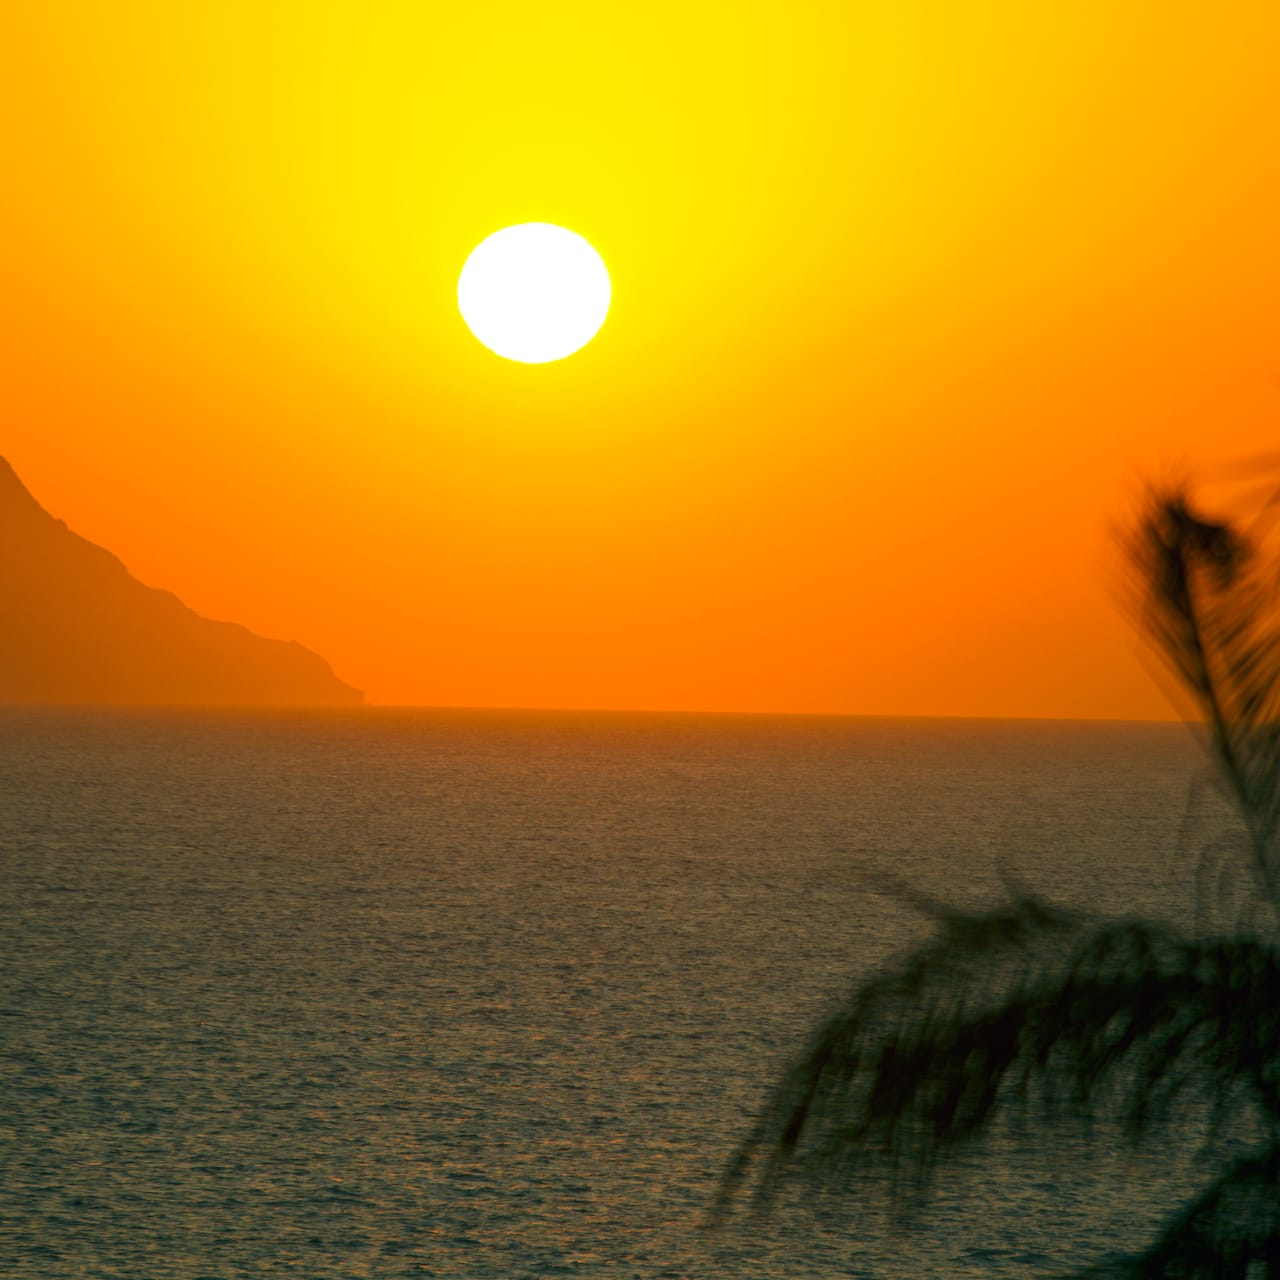 The sun sets over a body of water with a seaside cliff in the distance and a palm tree in the foreground